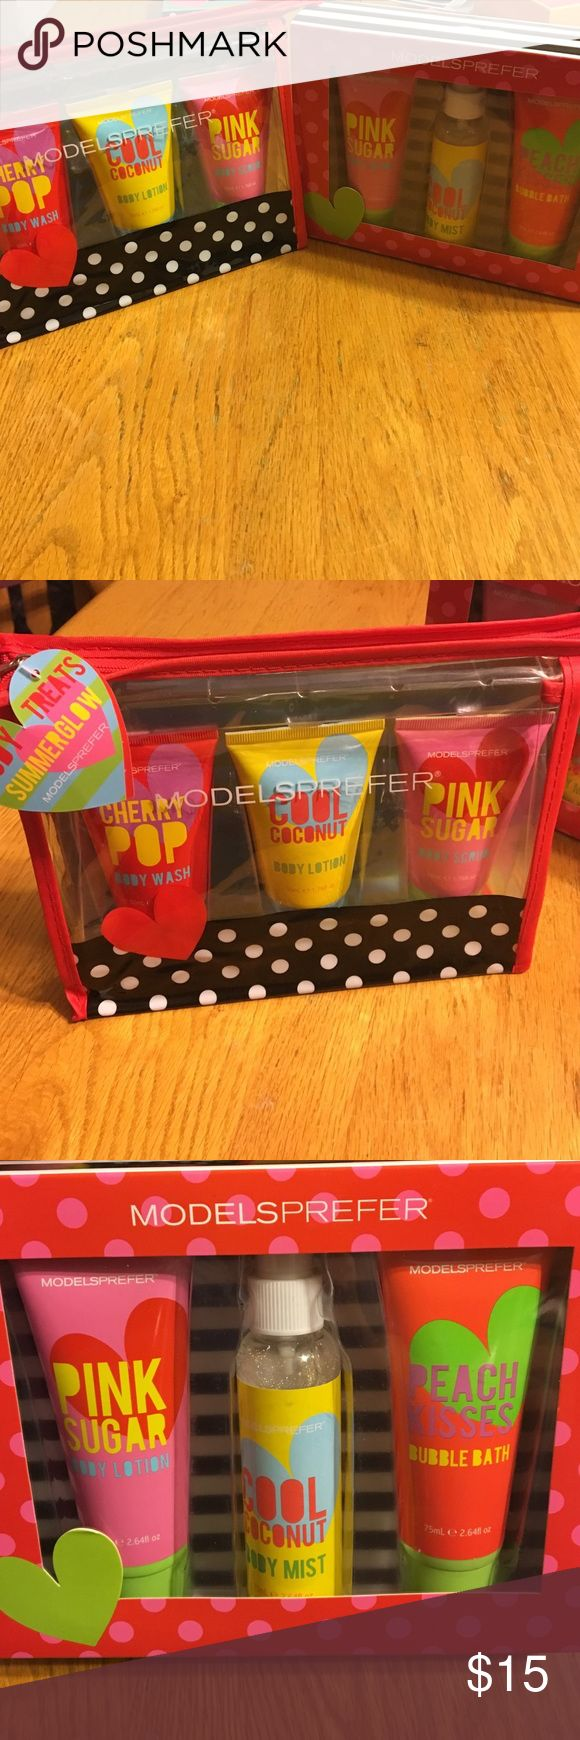 Kids Bath & Body Gift Sets. Includes a free gift! Body Treats Summer Glow Gift Sets. Cherry Pop Body Wash, Cool Coconut Body Lotion, Pink Sugar Body Scrub/Lotion, Body Sparkle Mist, and Bubble Bath. Purchase these two sets and receive a free lip gloss gift set that includes 9 different glosses!!! What a deal ModelSprefer Other